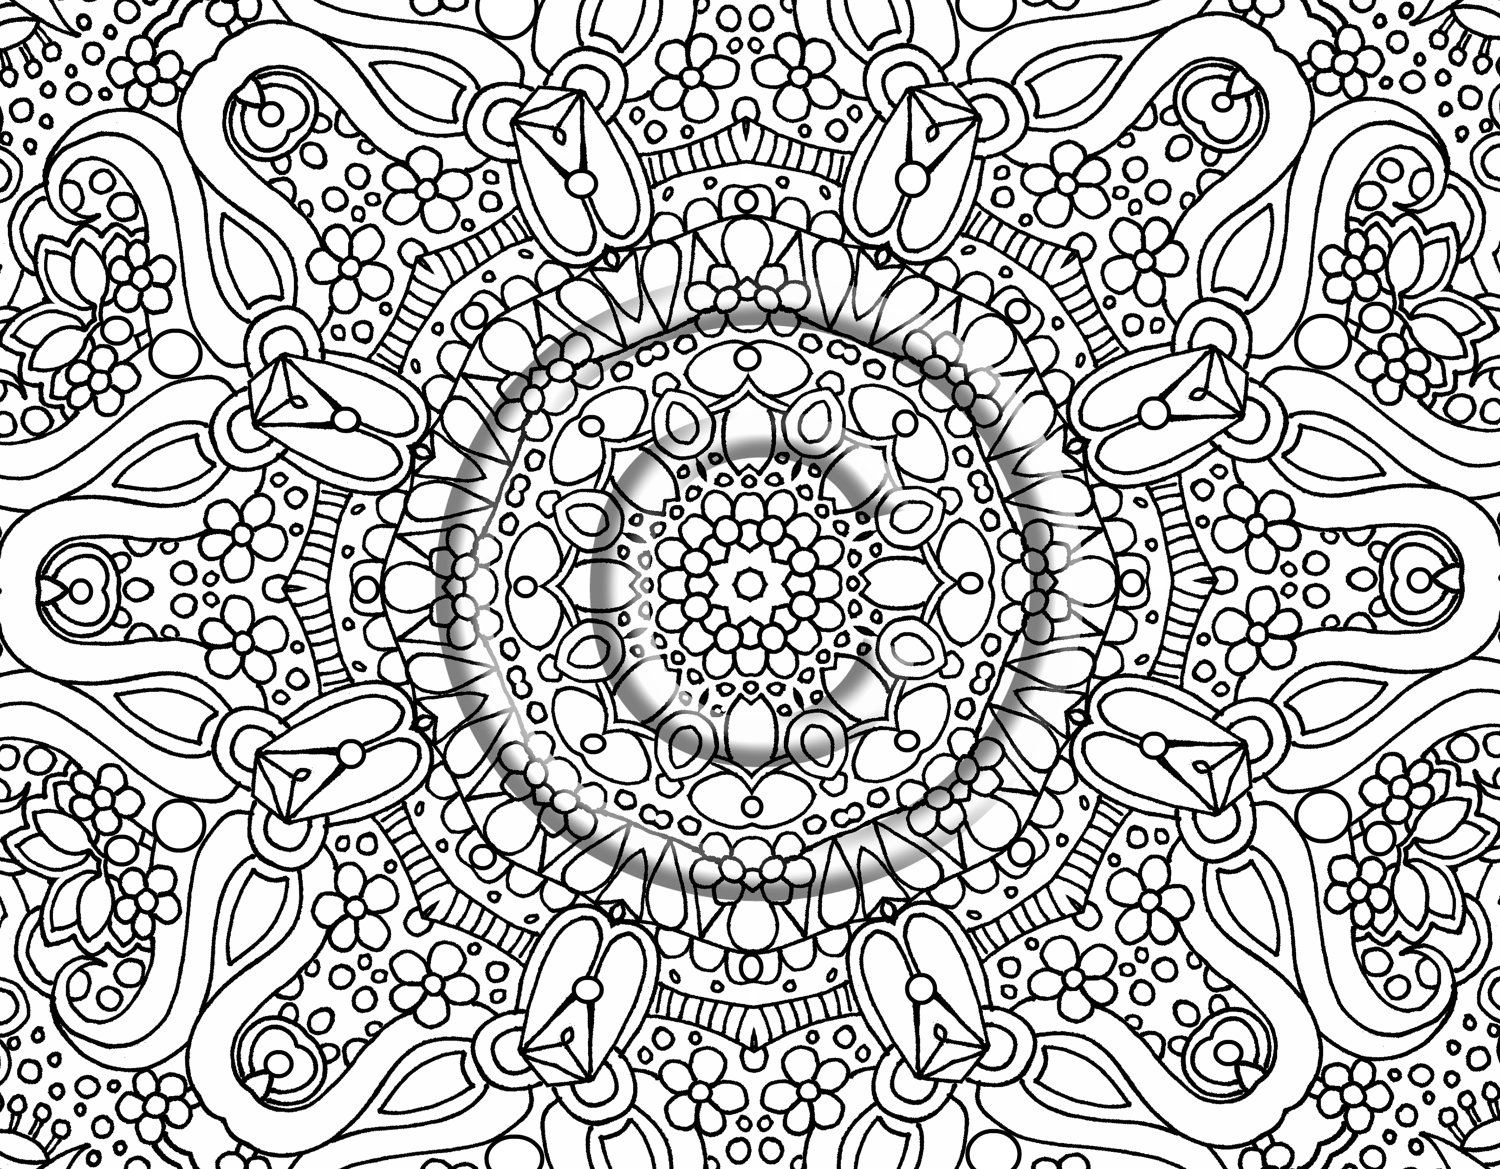 Free printable abstract coloring pages for adults for Hard printable coloring pages